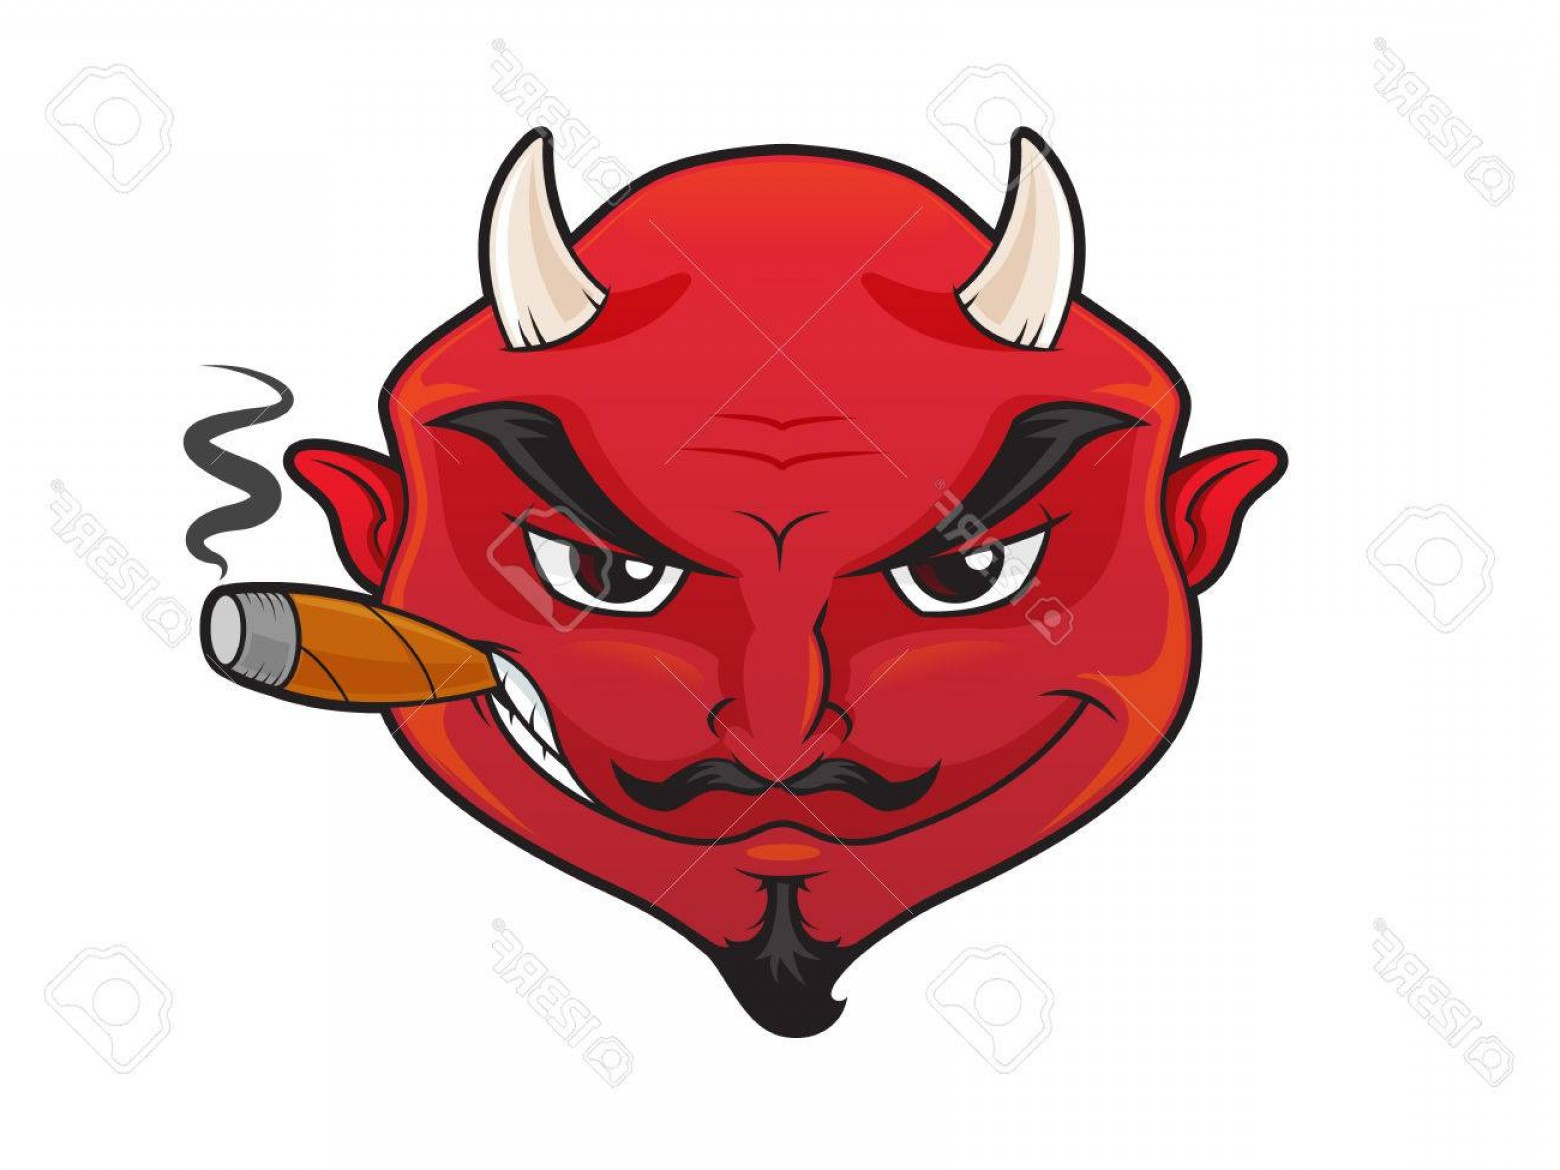 Cigar Cartoon Vector: Photostock Vector Red Devil S Face With Evil Grin Smoking Cigar Cartoon Illustration